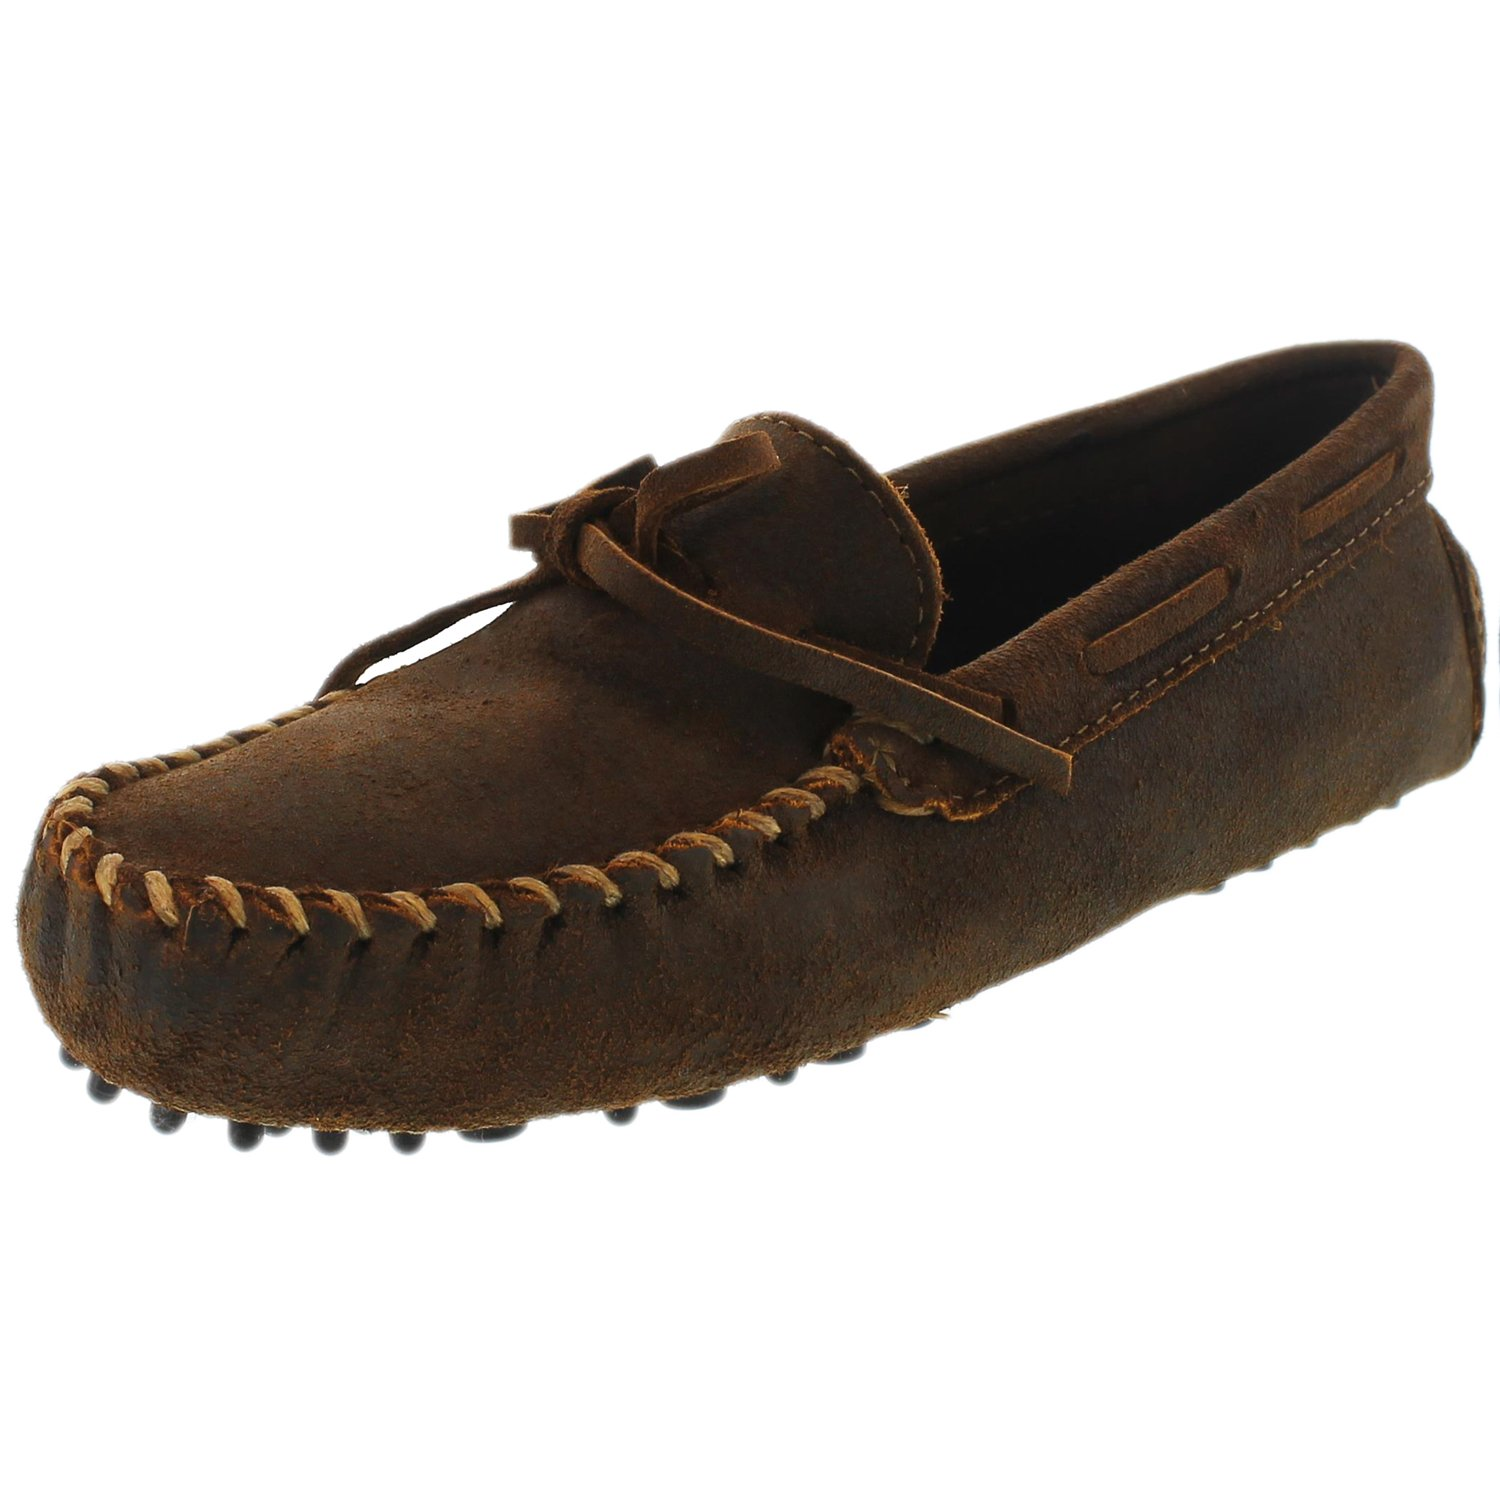 Minnetonka Men's Original Brown Ankle-High Leather Loafer - 7.5M